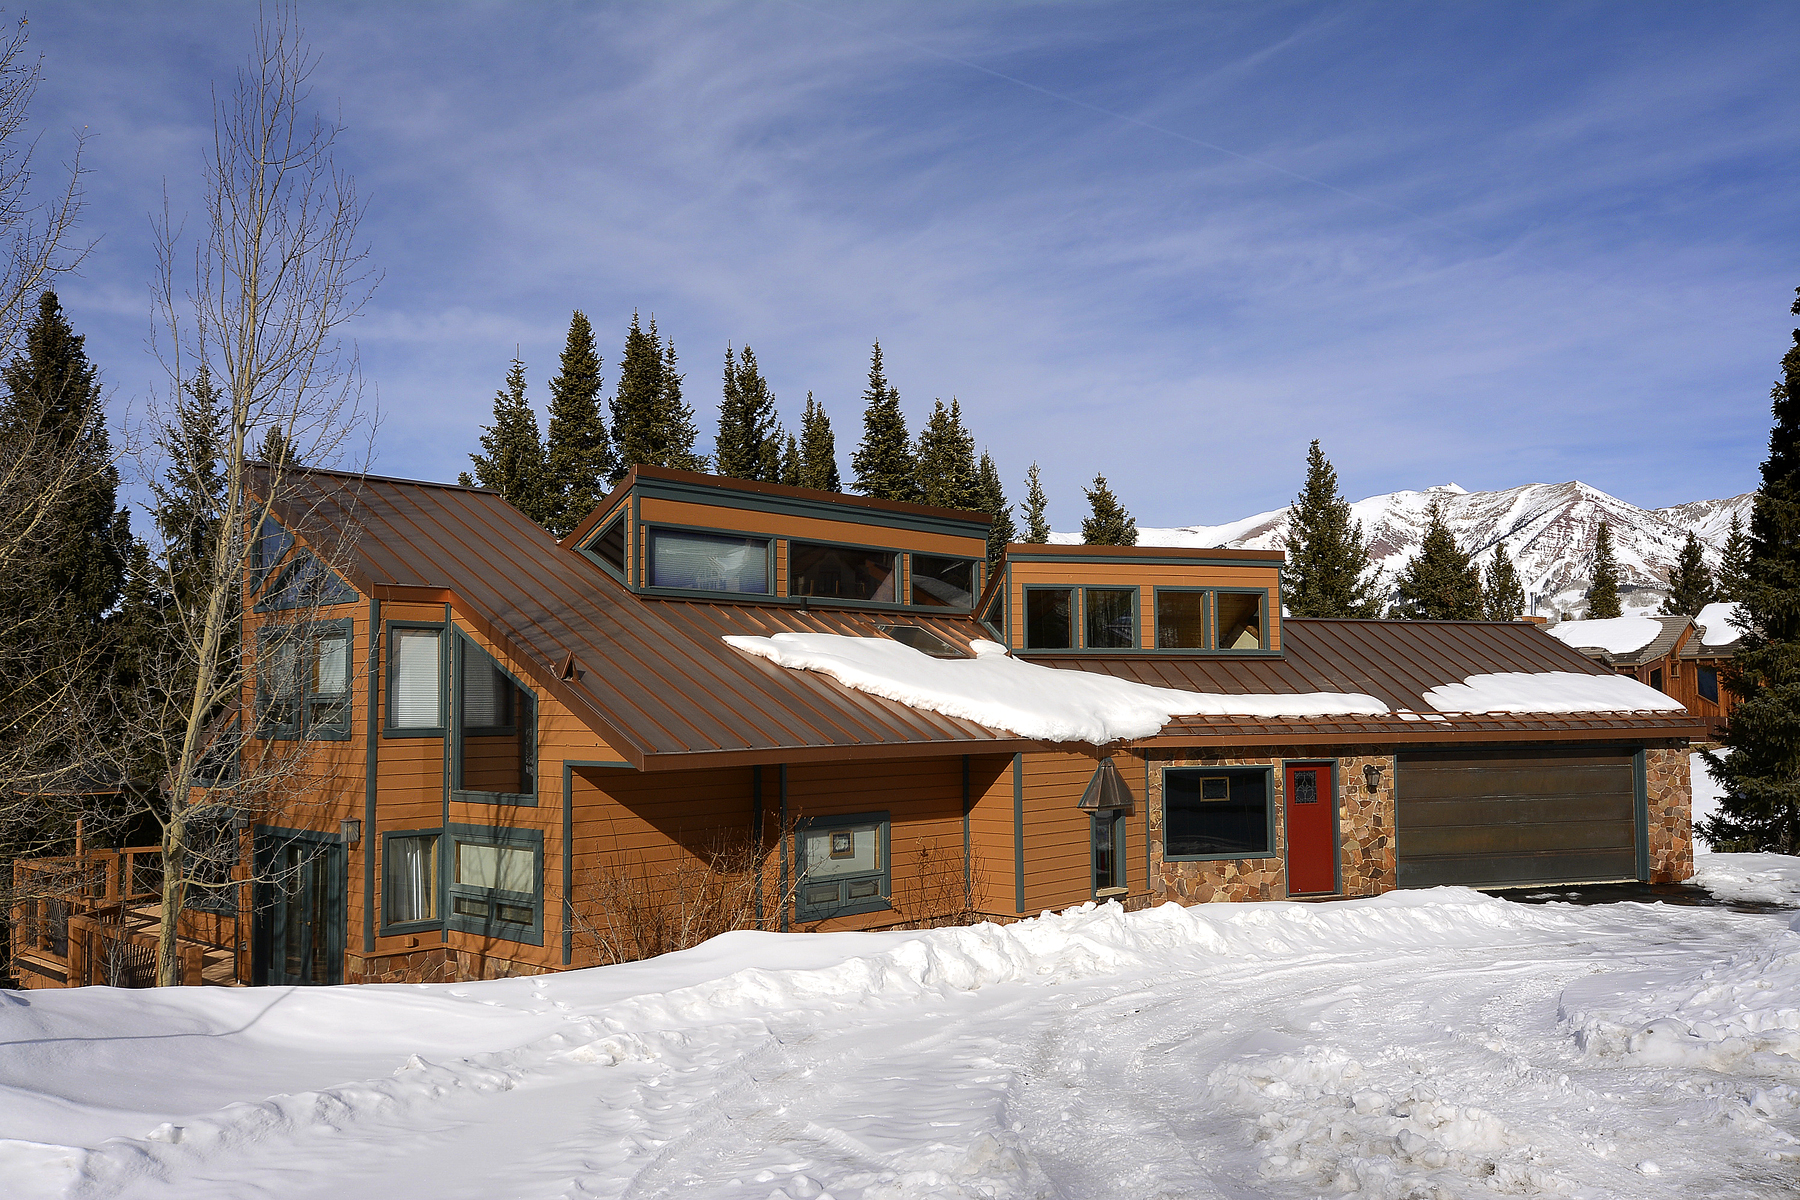 Maison unifamiliale pour l Vente à Desirable Mountain Home 10 Aspen Lane Mount Crested Butte, Colorado, 81225 États-Unis